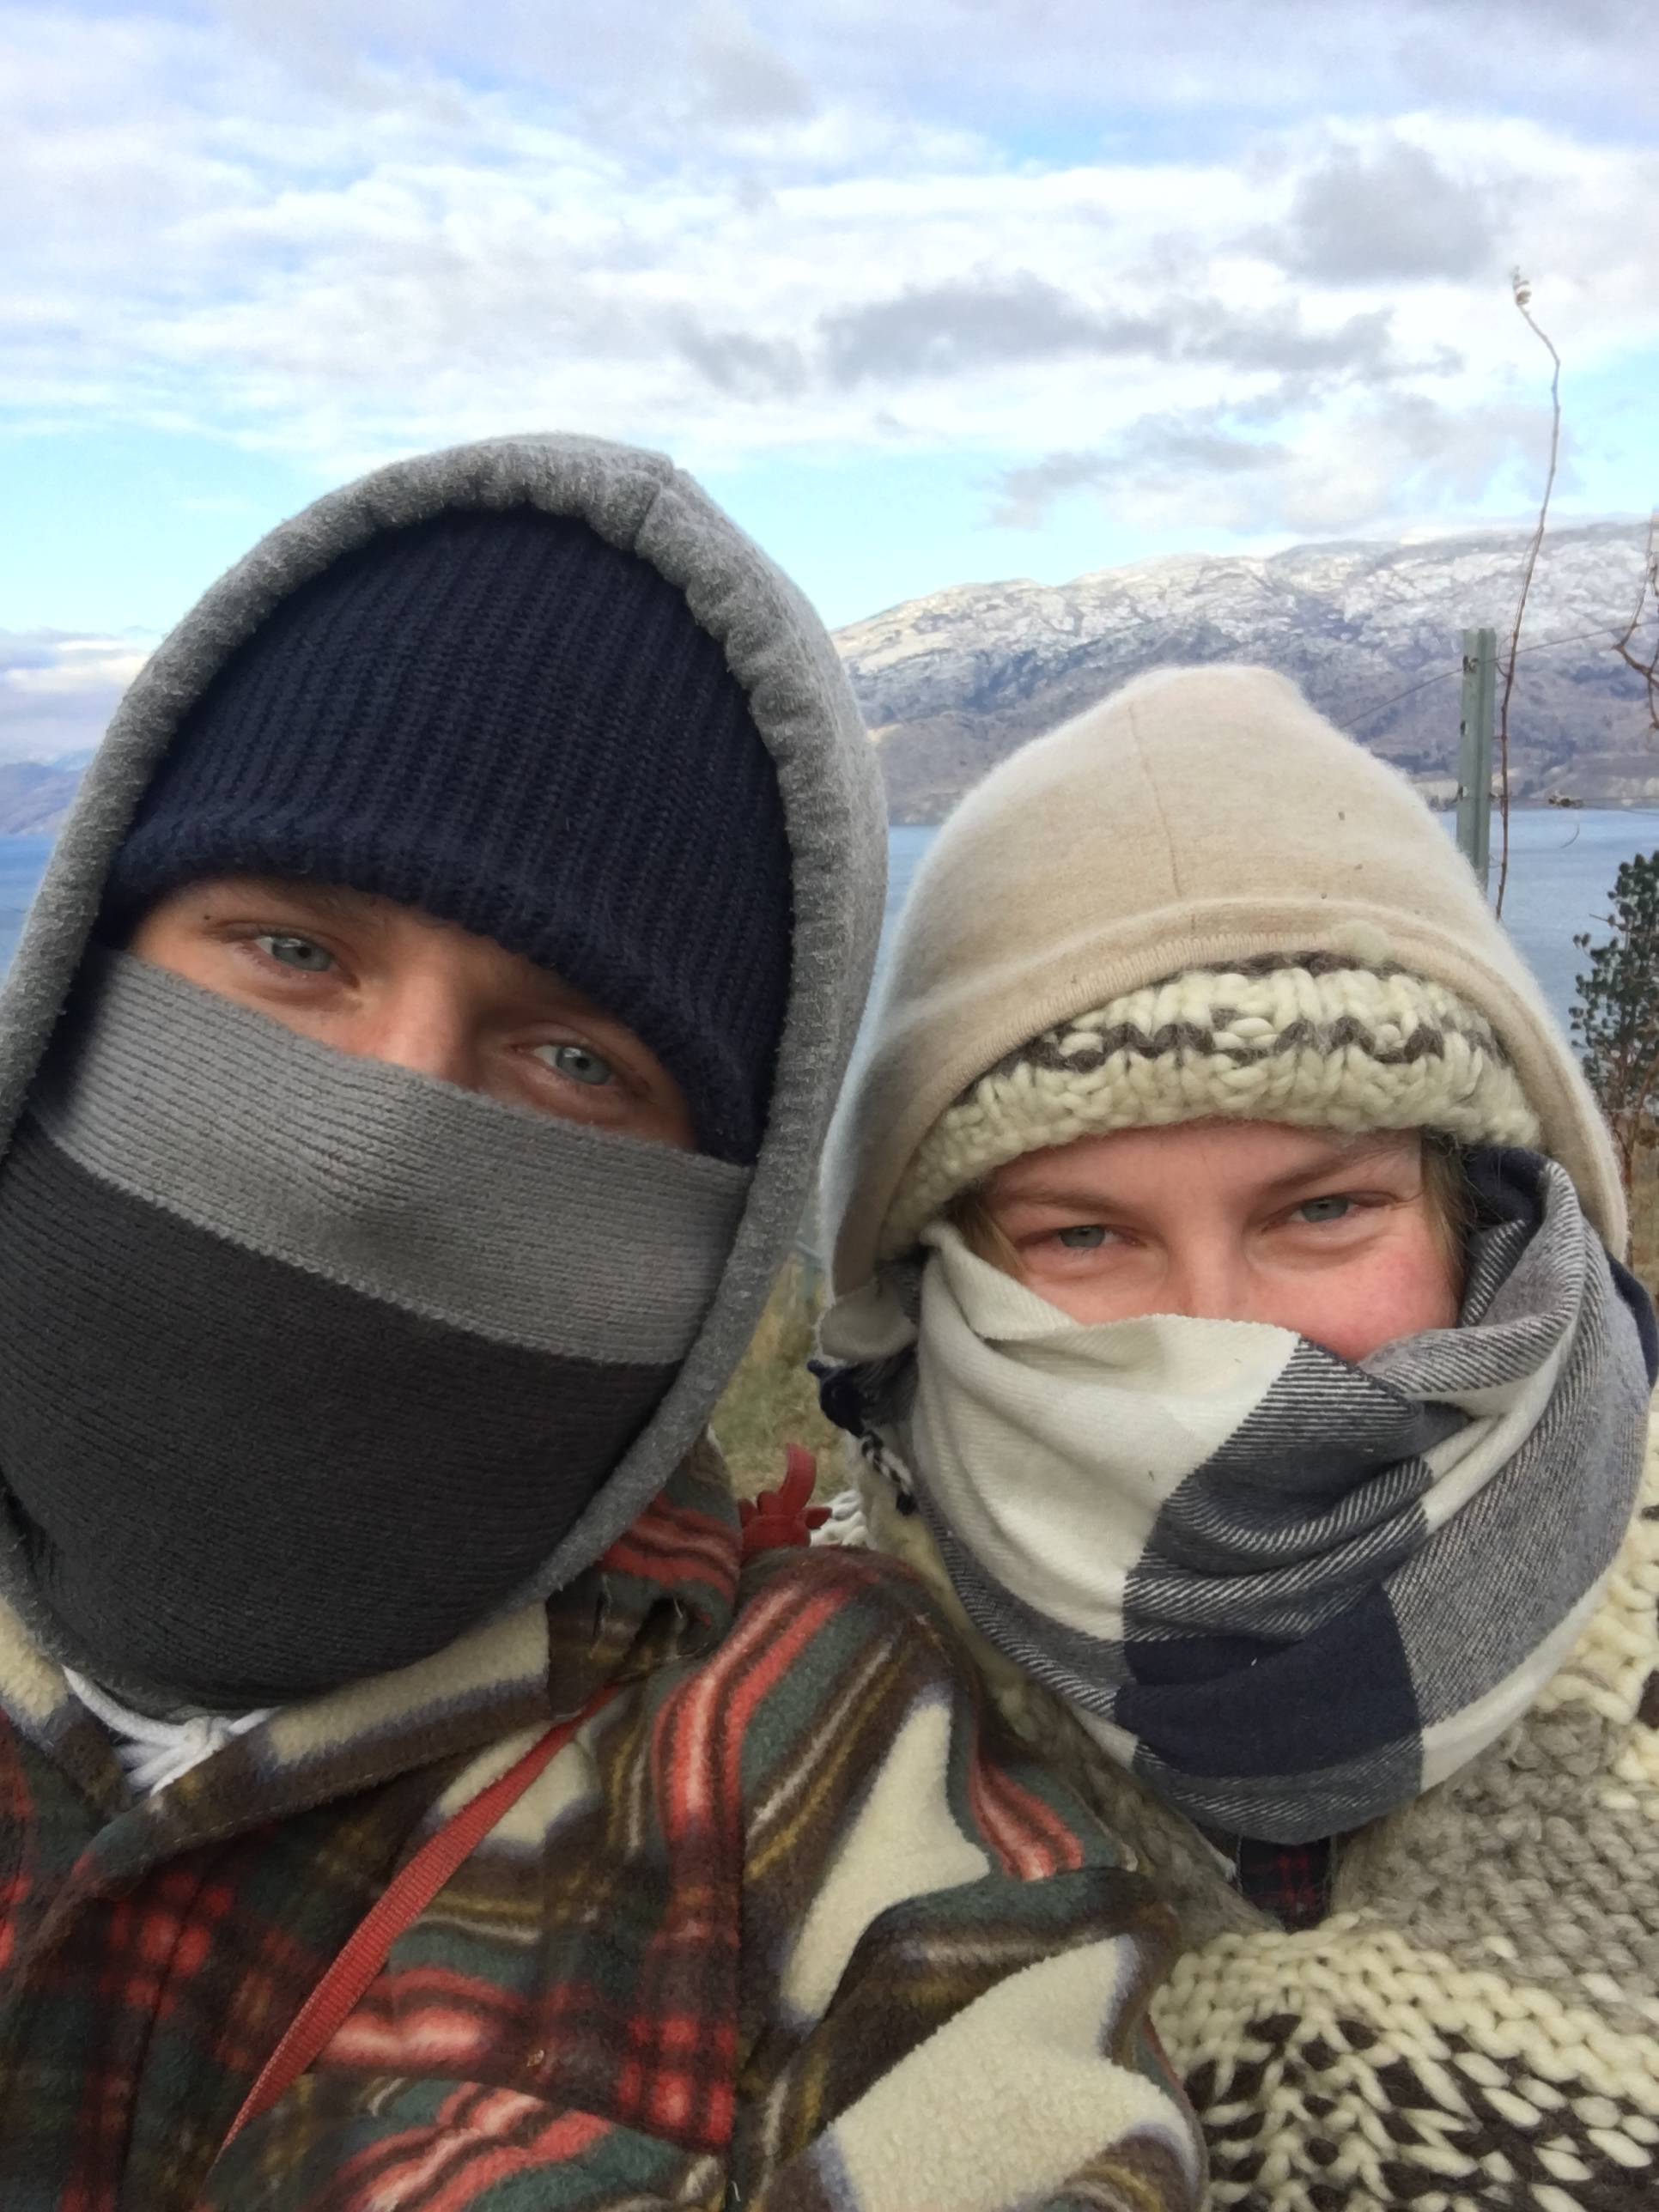 Intrepid young winemakers braving what was a very cold 2016 winter